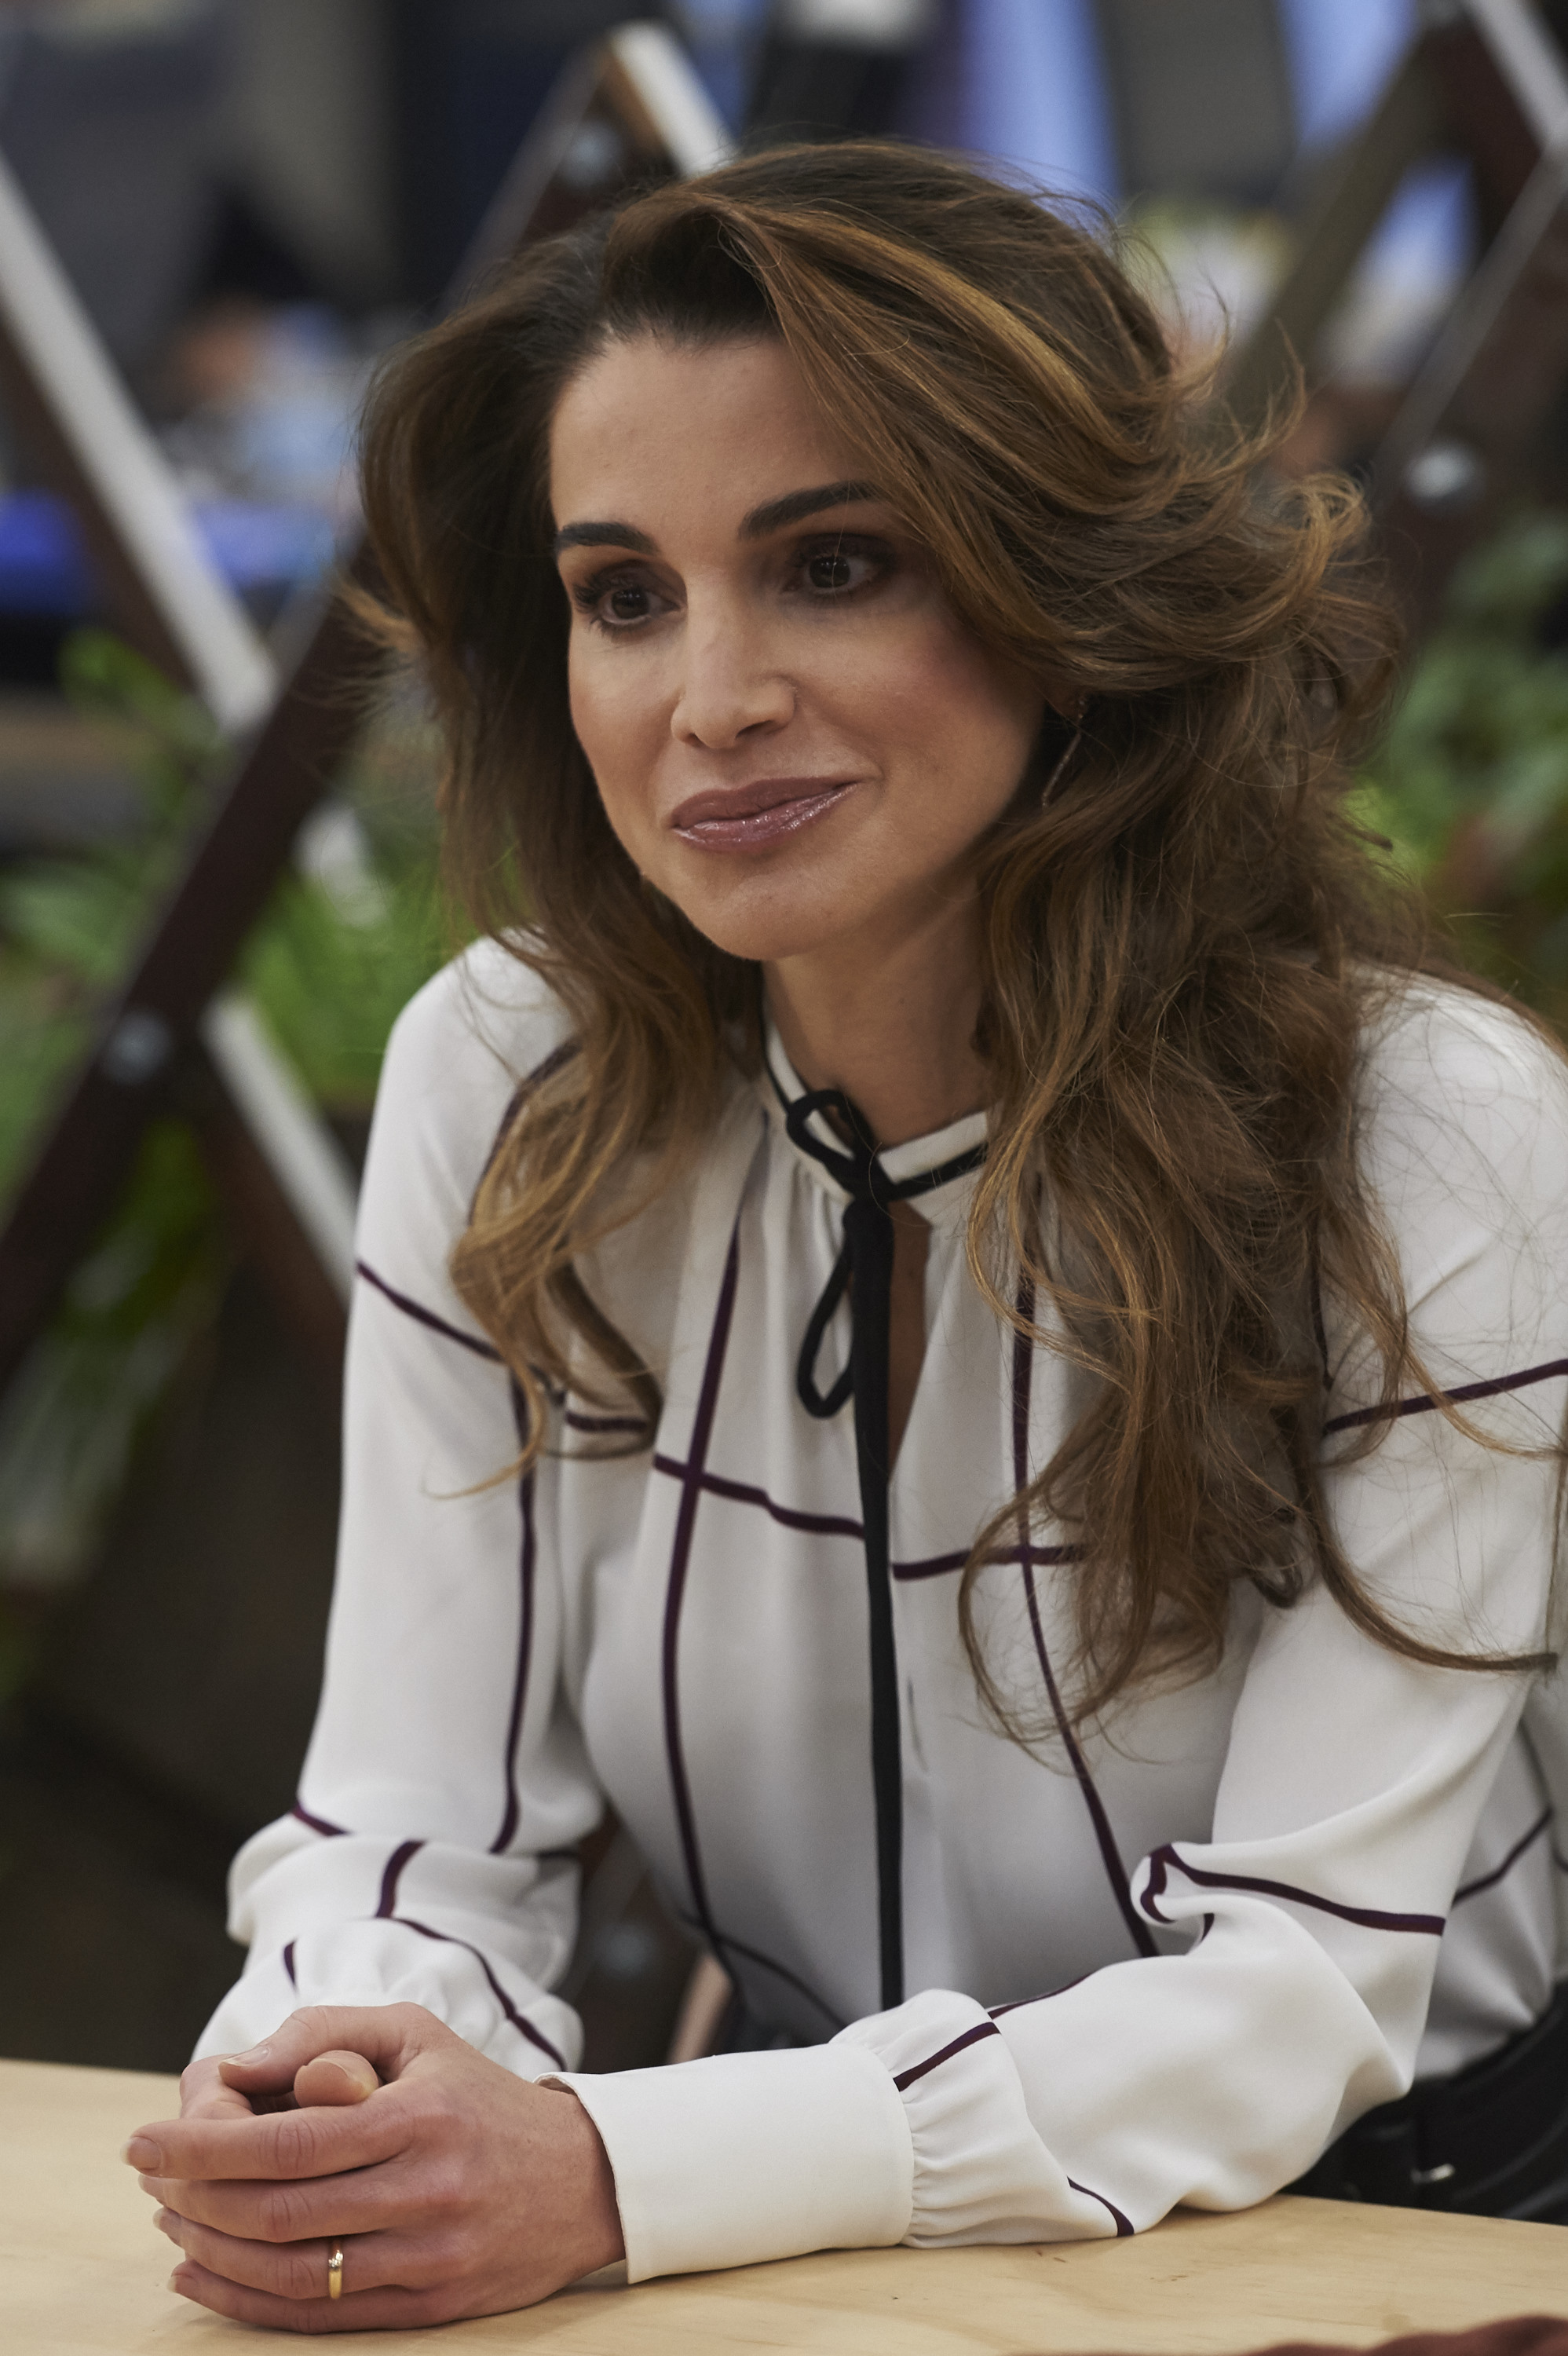 queen rania photo 117 of 225 pics wallpaper   photo